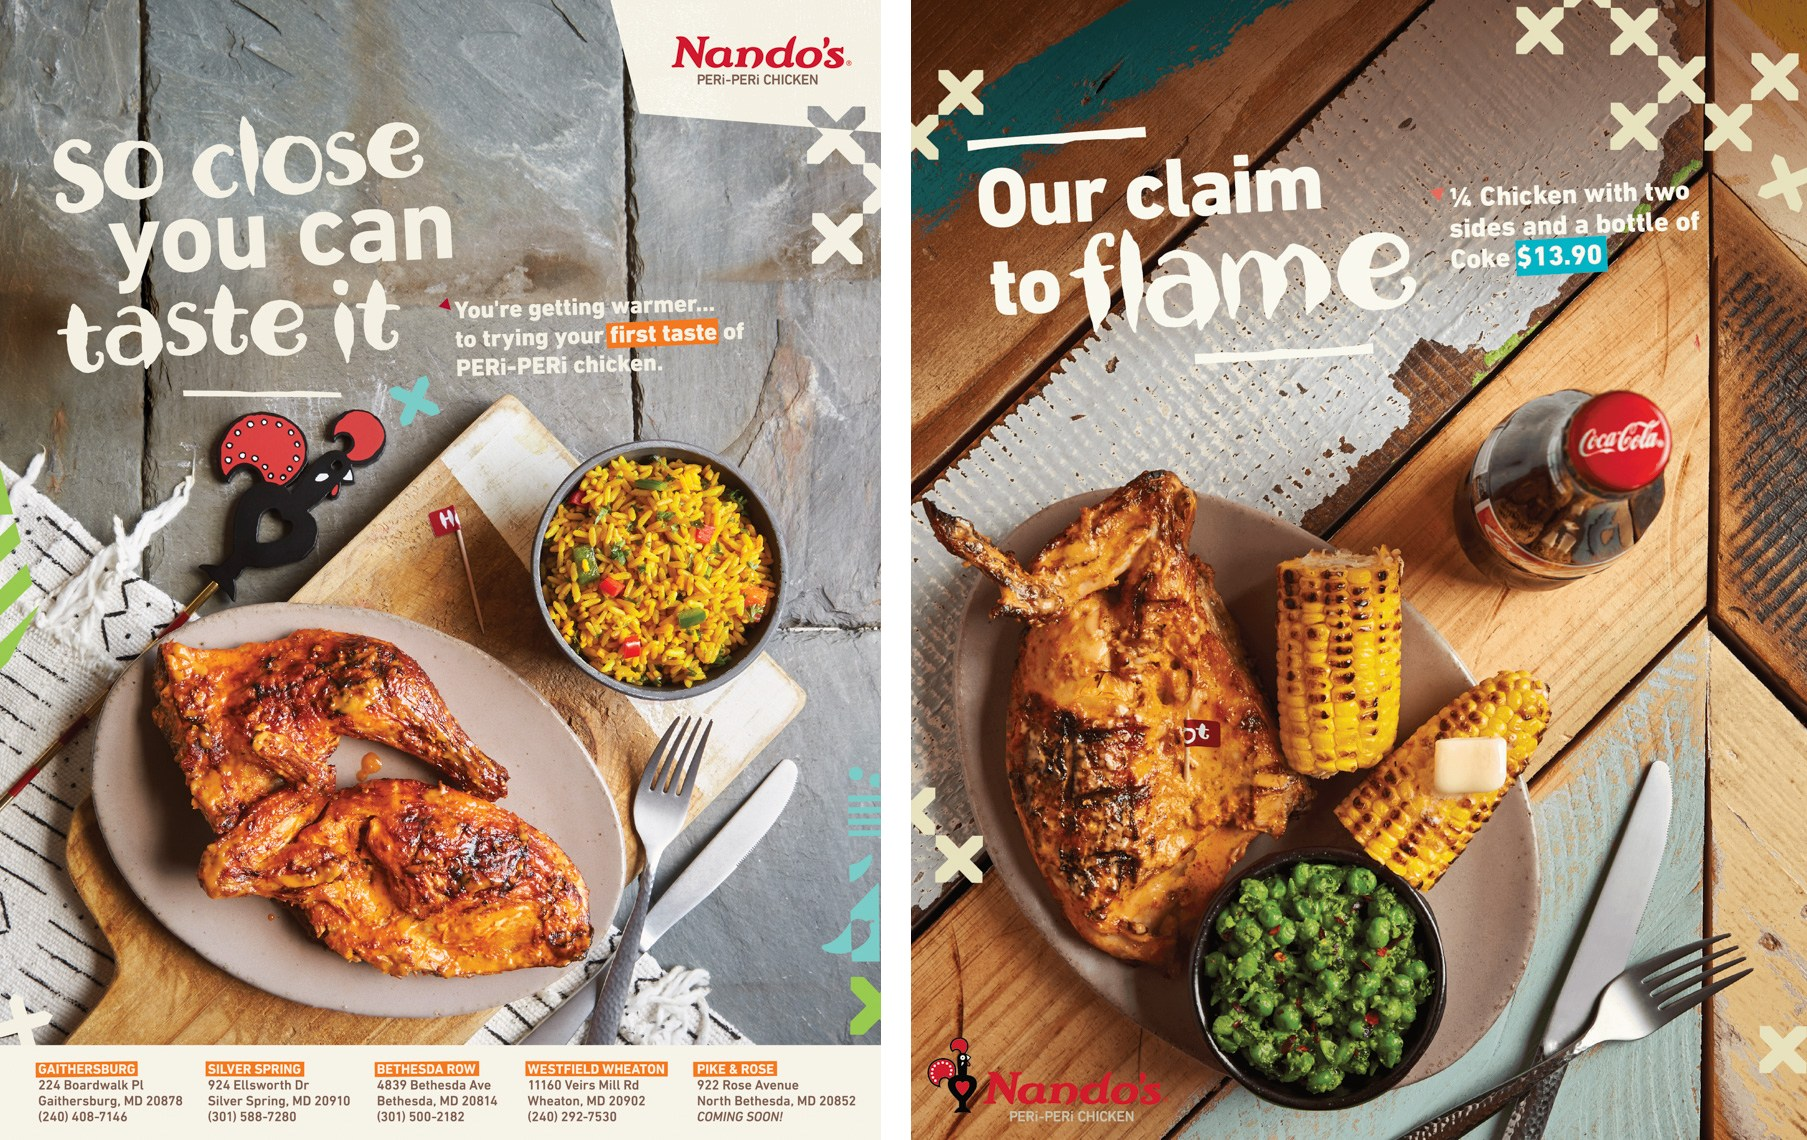 ADVERTISE-Culinary3-Nandos